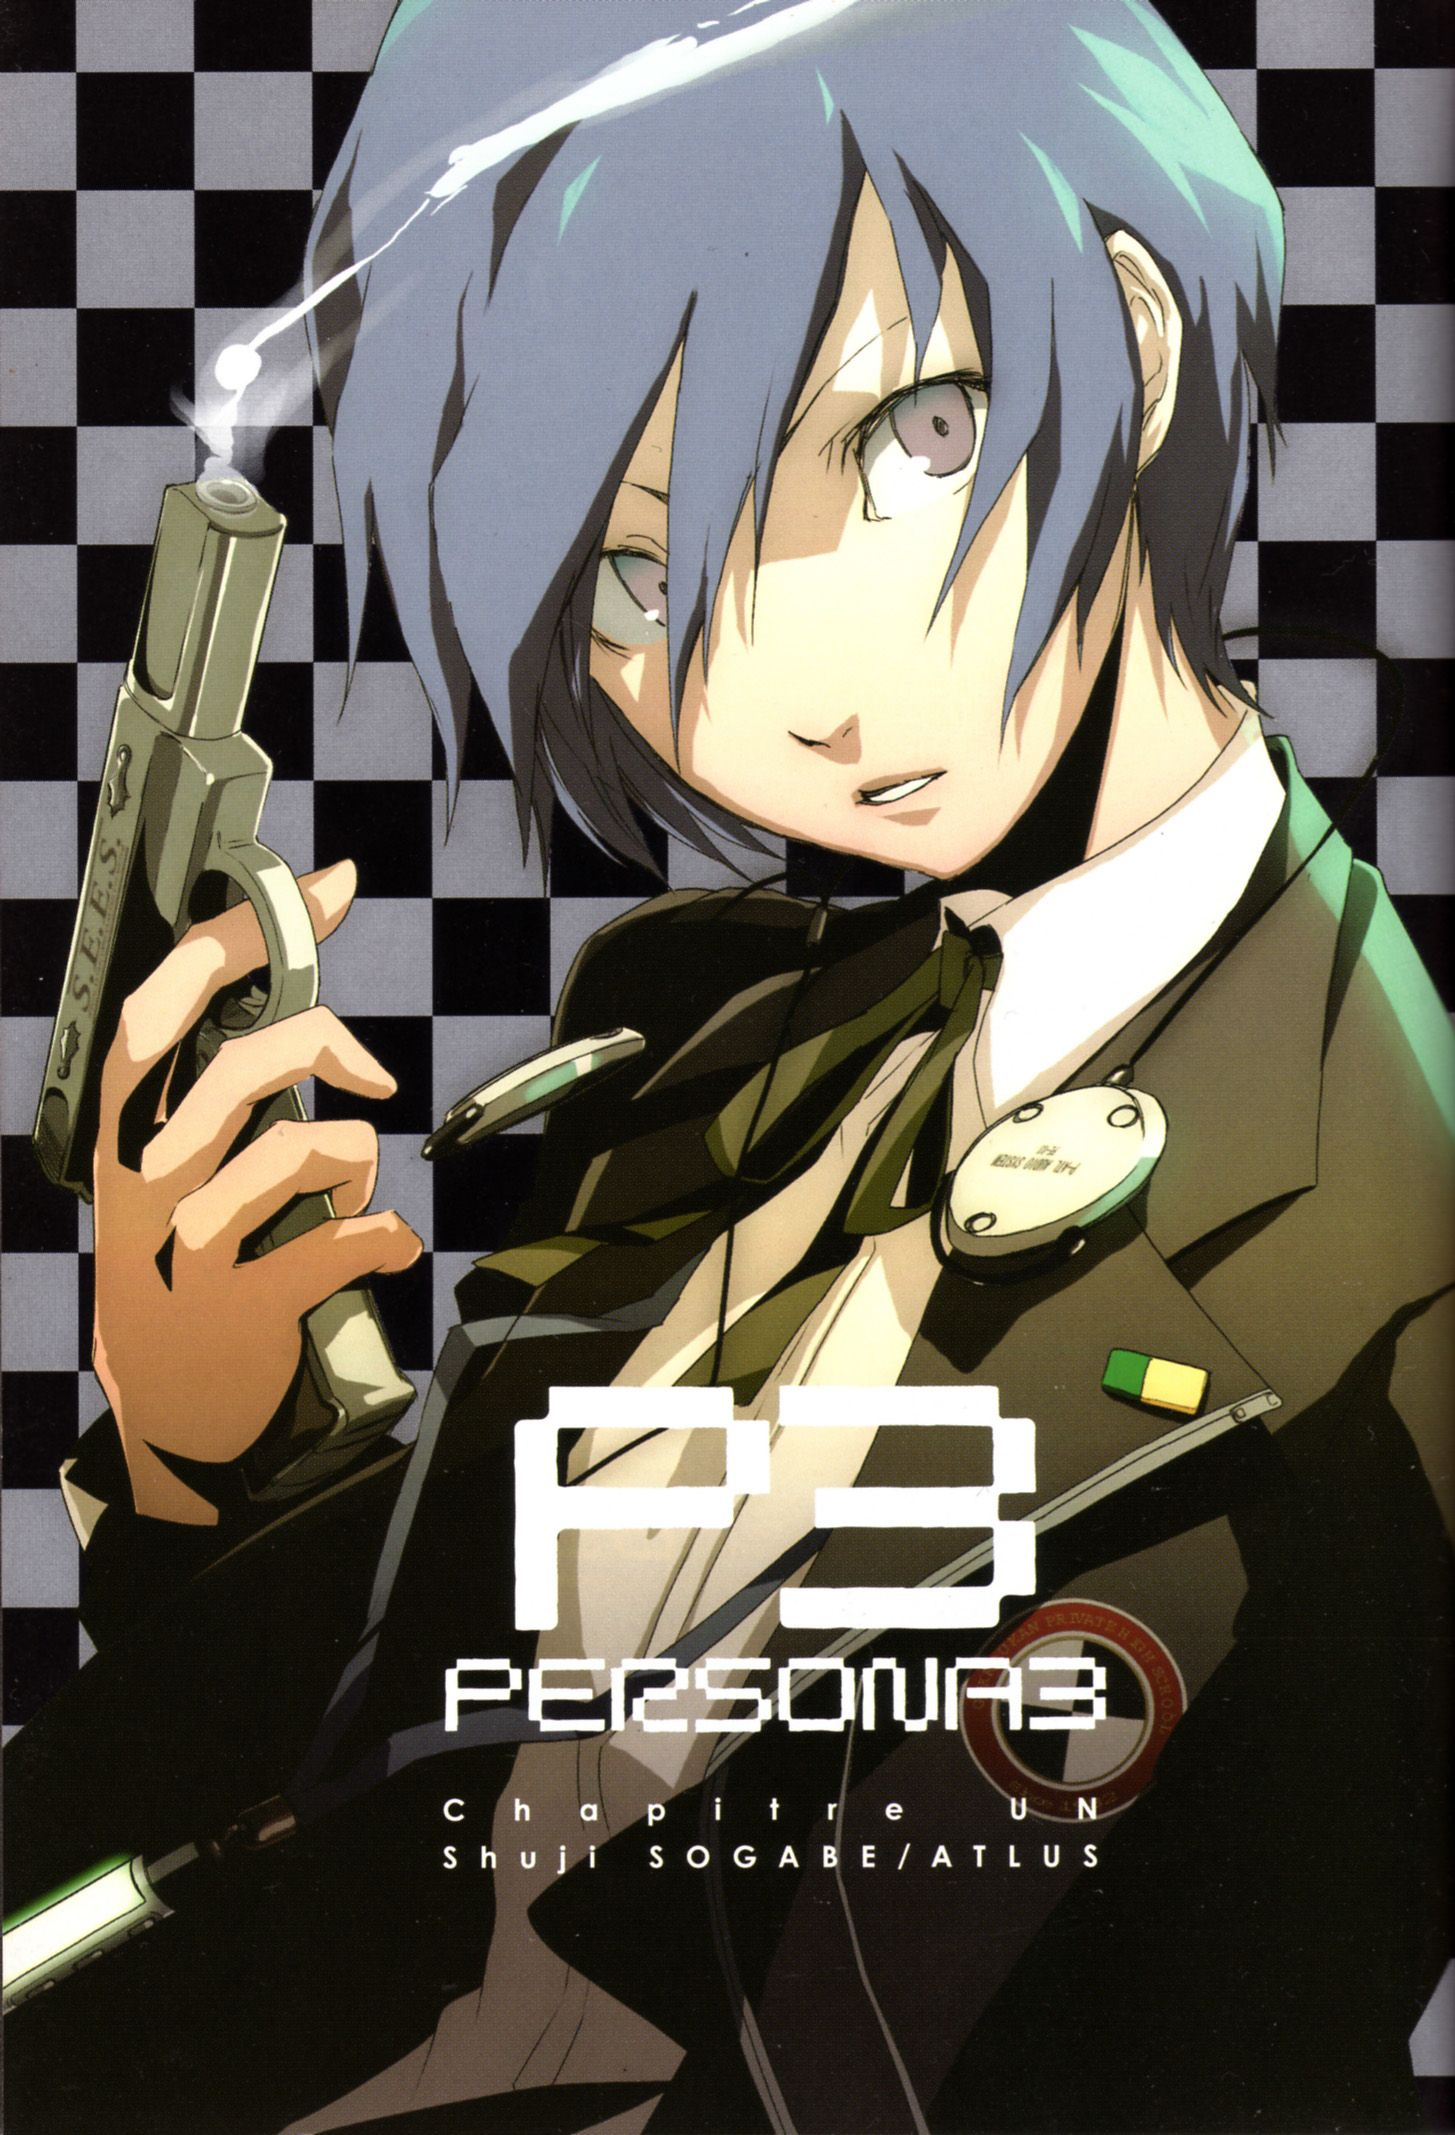 Persona 3 iphone 5 wallpaper - Video Games